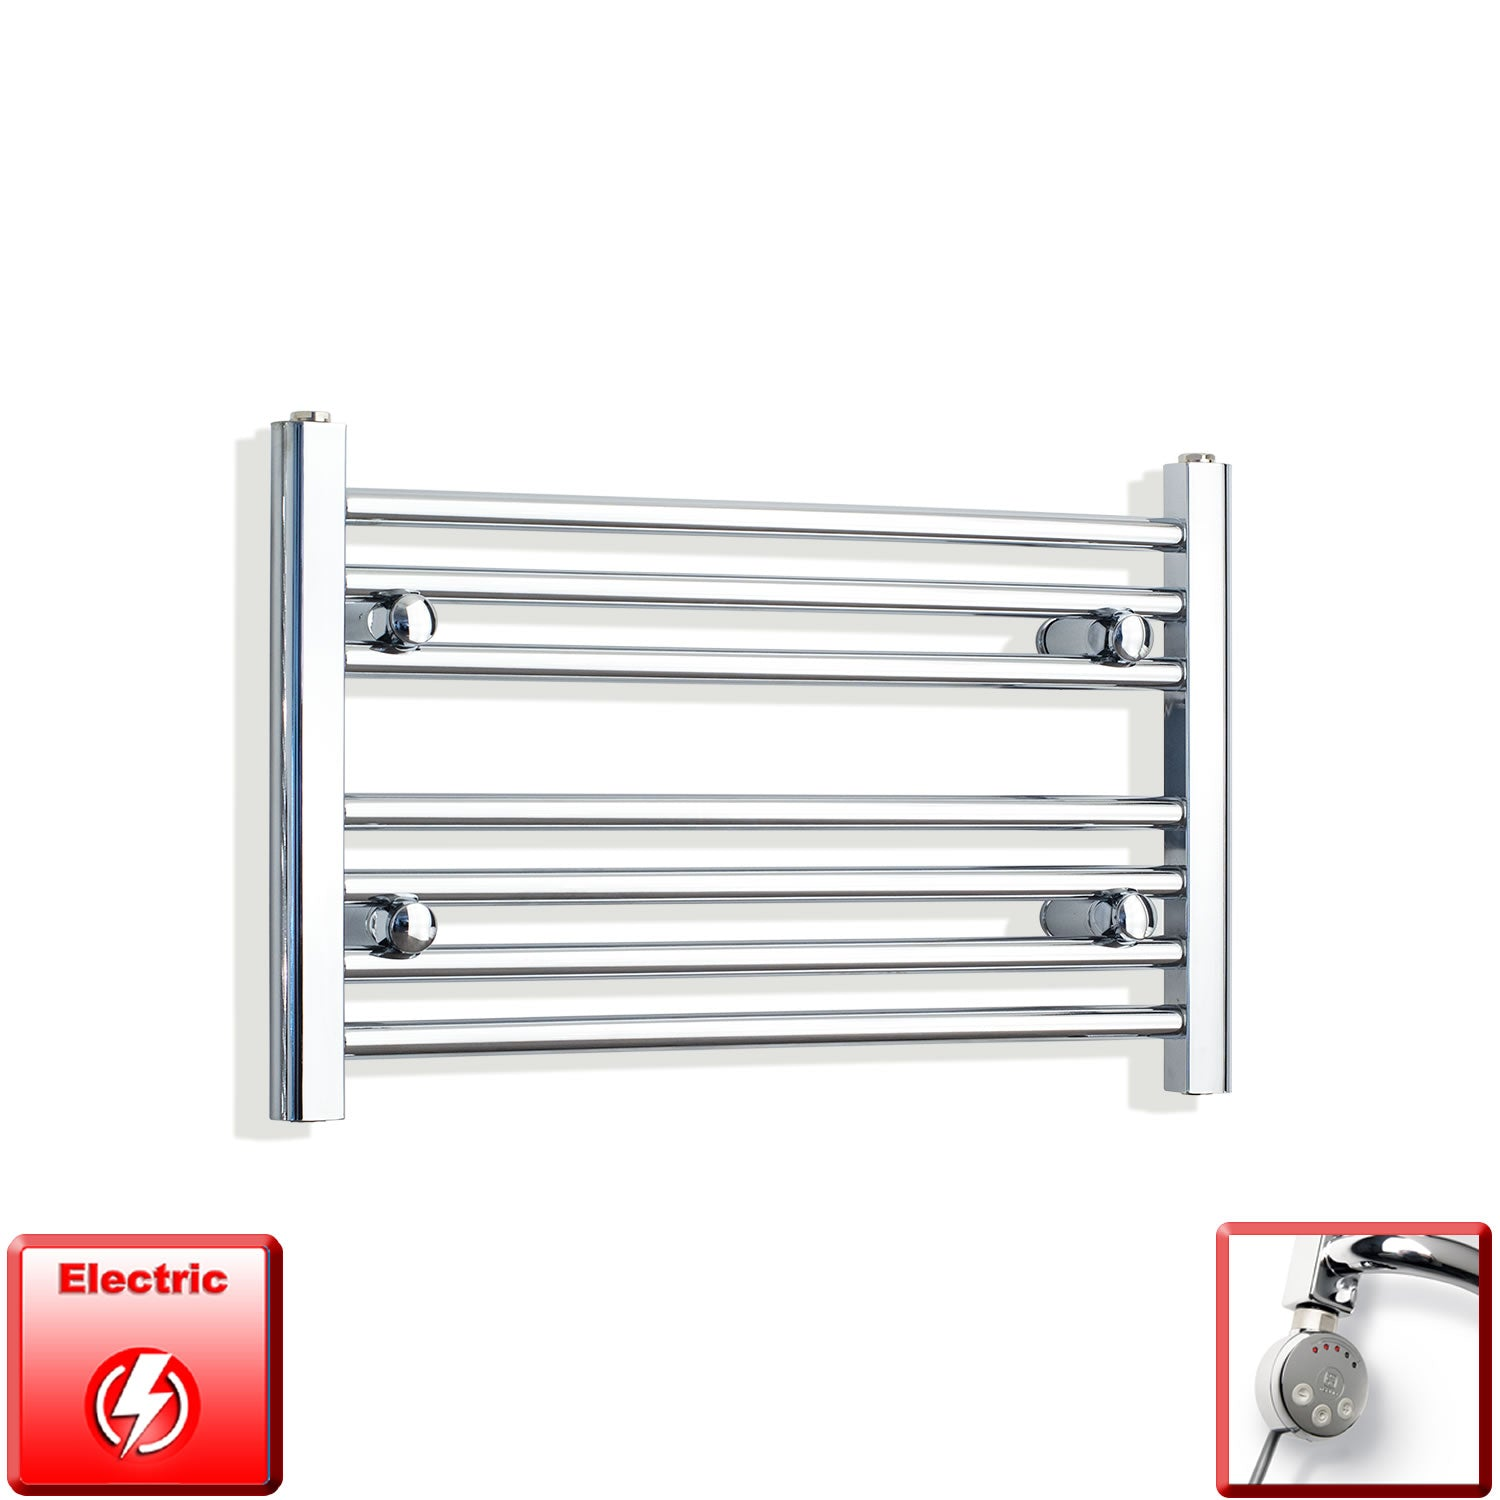 650mm Wide 400mm High Pre-Filled Chrome Electric Towel Rail Radiator With Thermostatic MEG Element